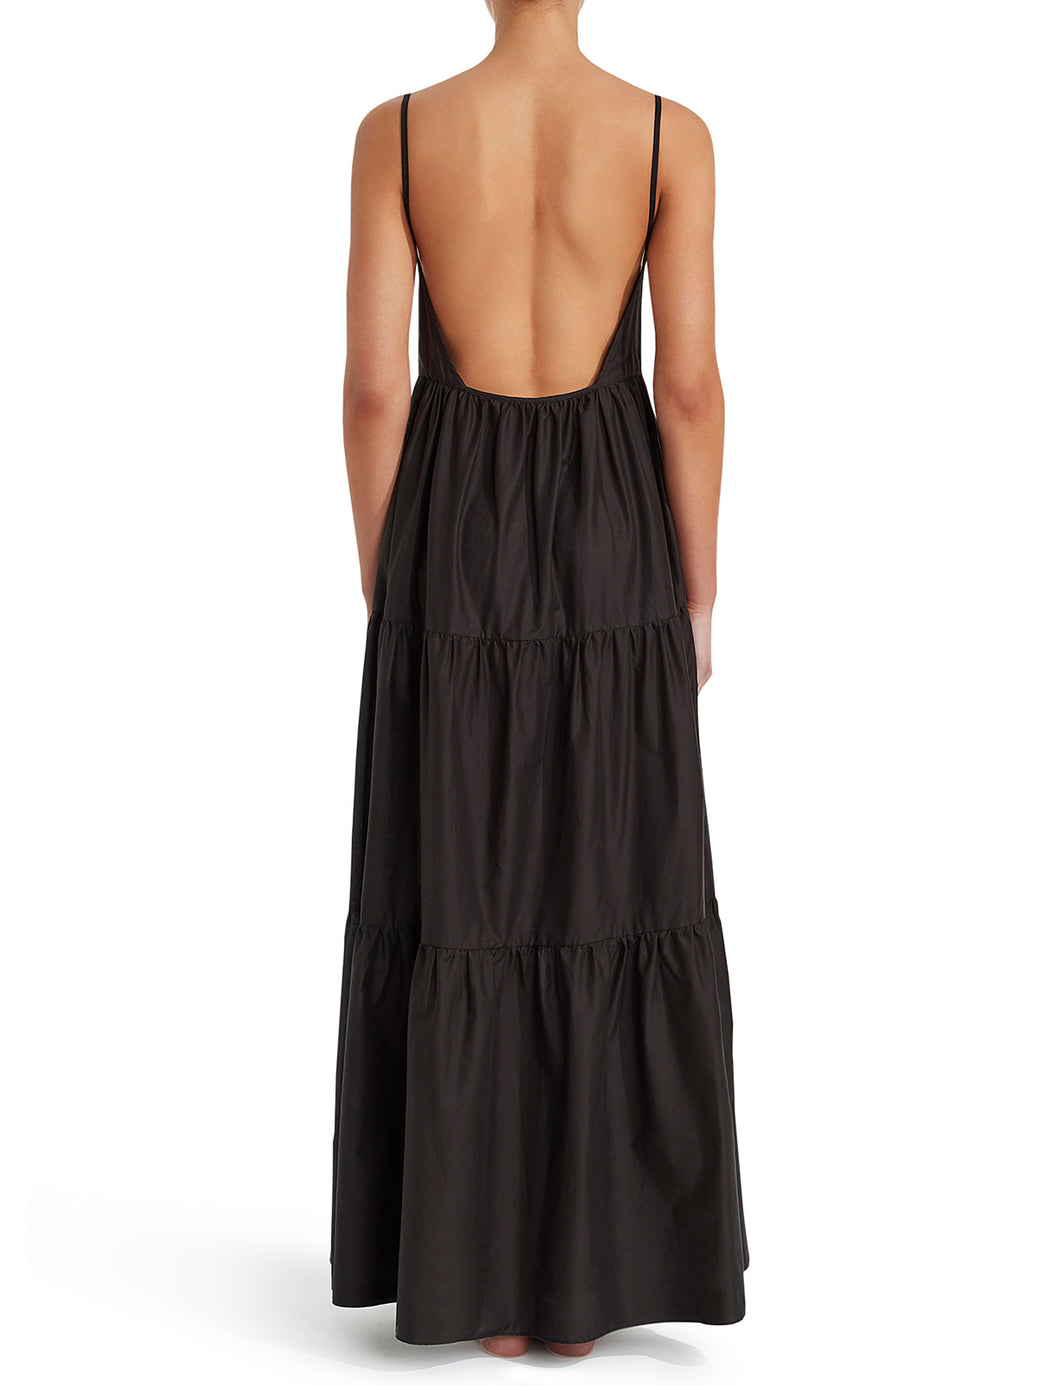 Tiered Low Back Sundress